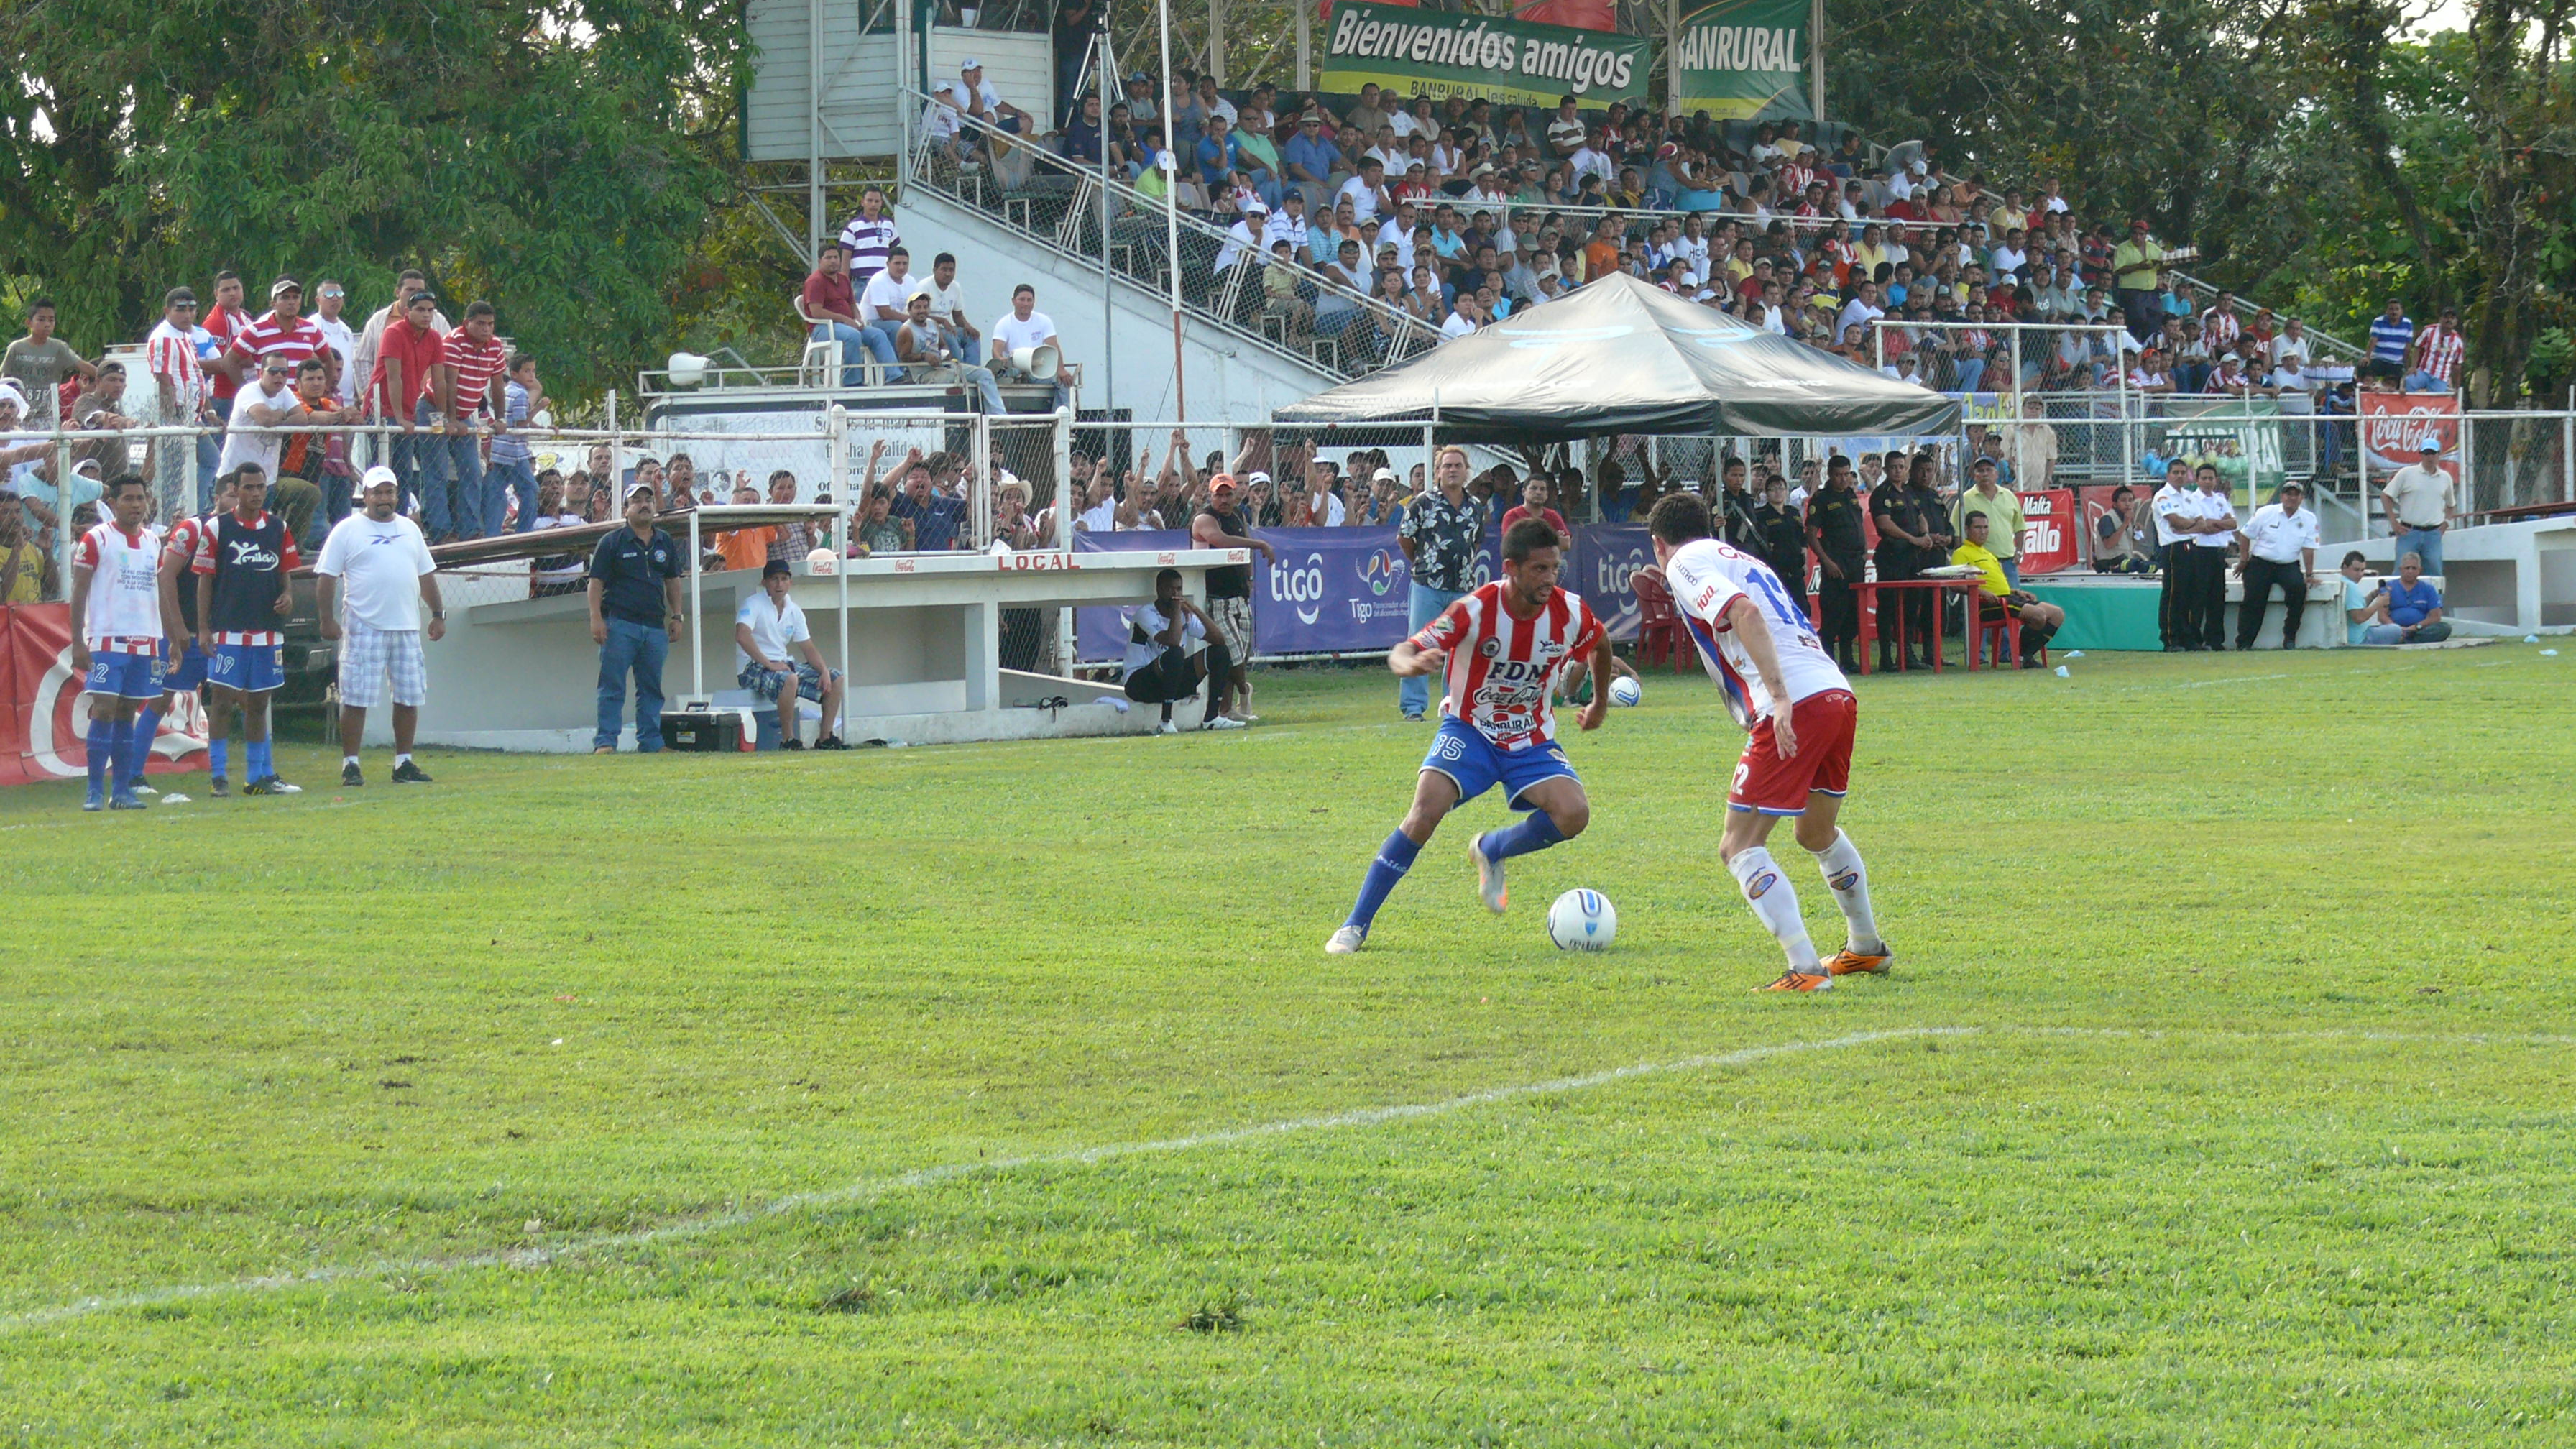 Final: Heredia derrota a Xela (2-1)